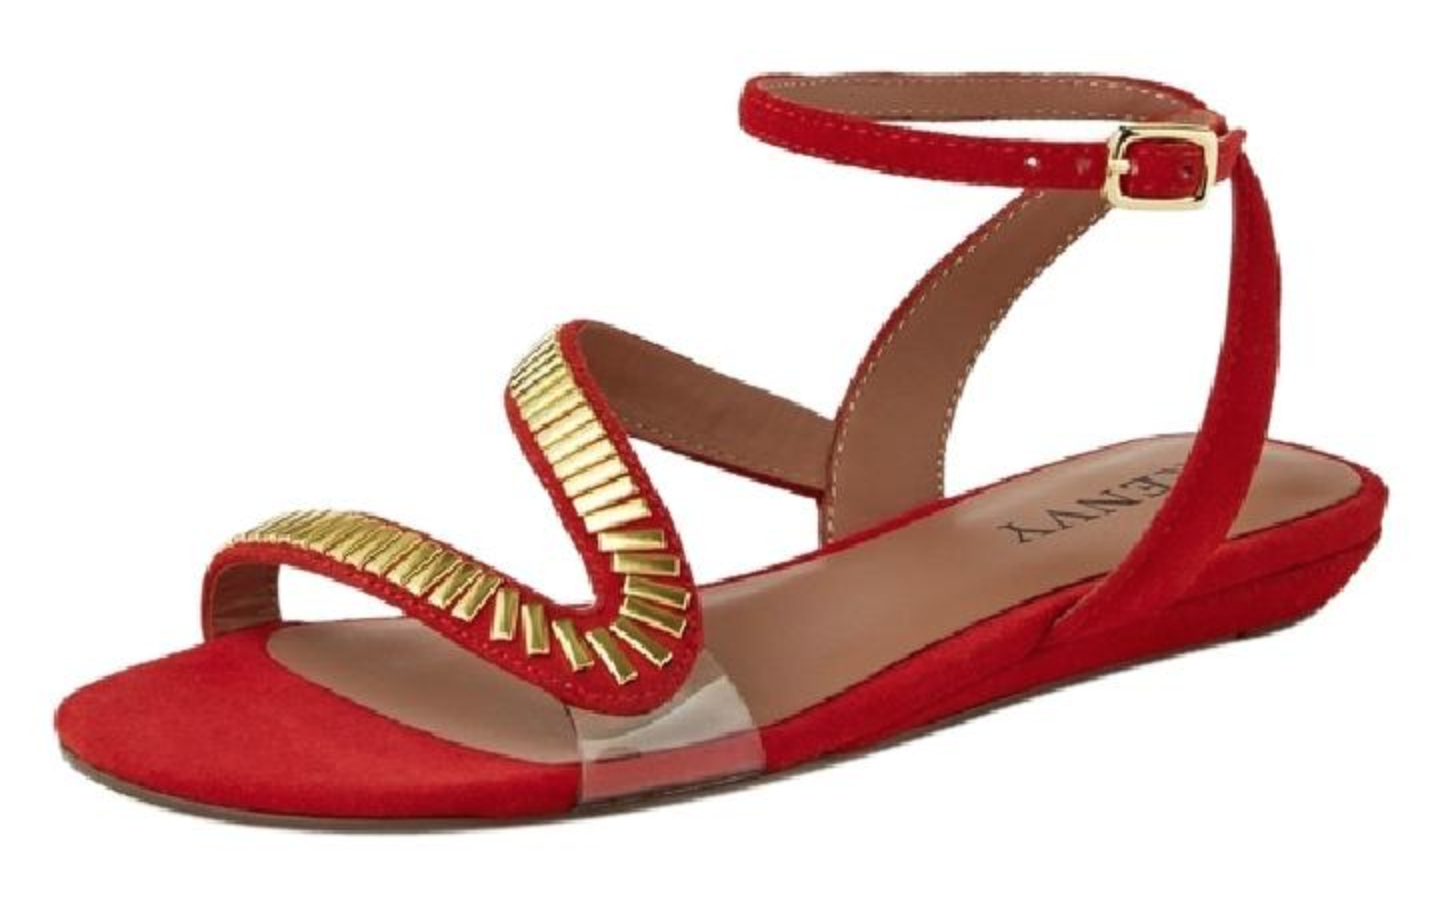 Renvy Sophie Embellished Embellished Embellished Low Wedge Taille rouge Sandals 7.5 NEW IN BOX Original  105 fc418b